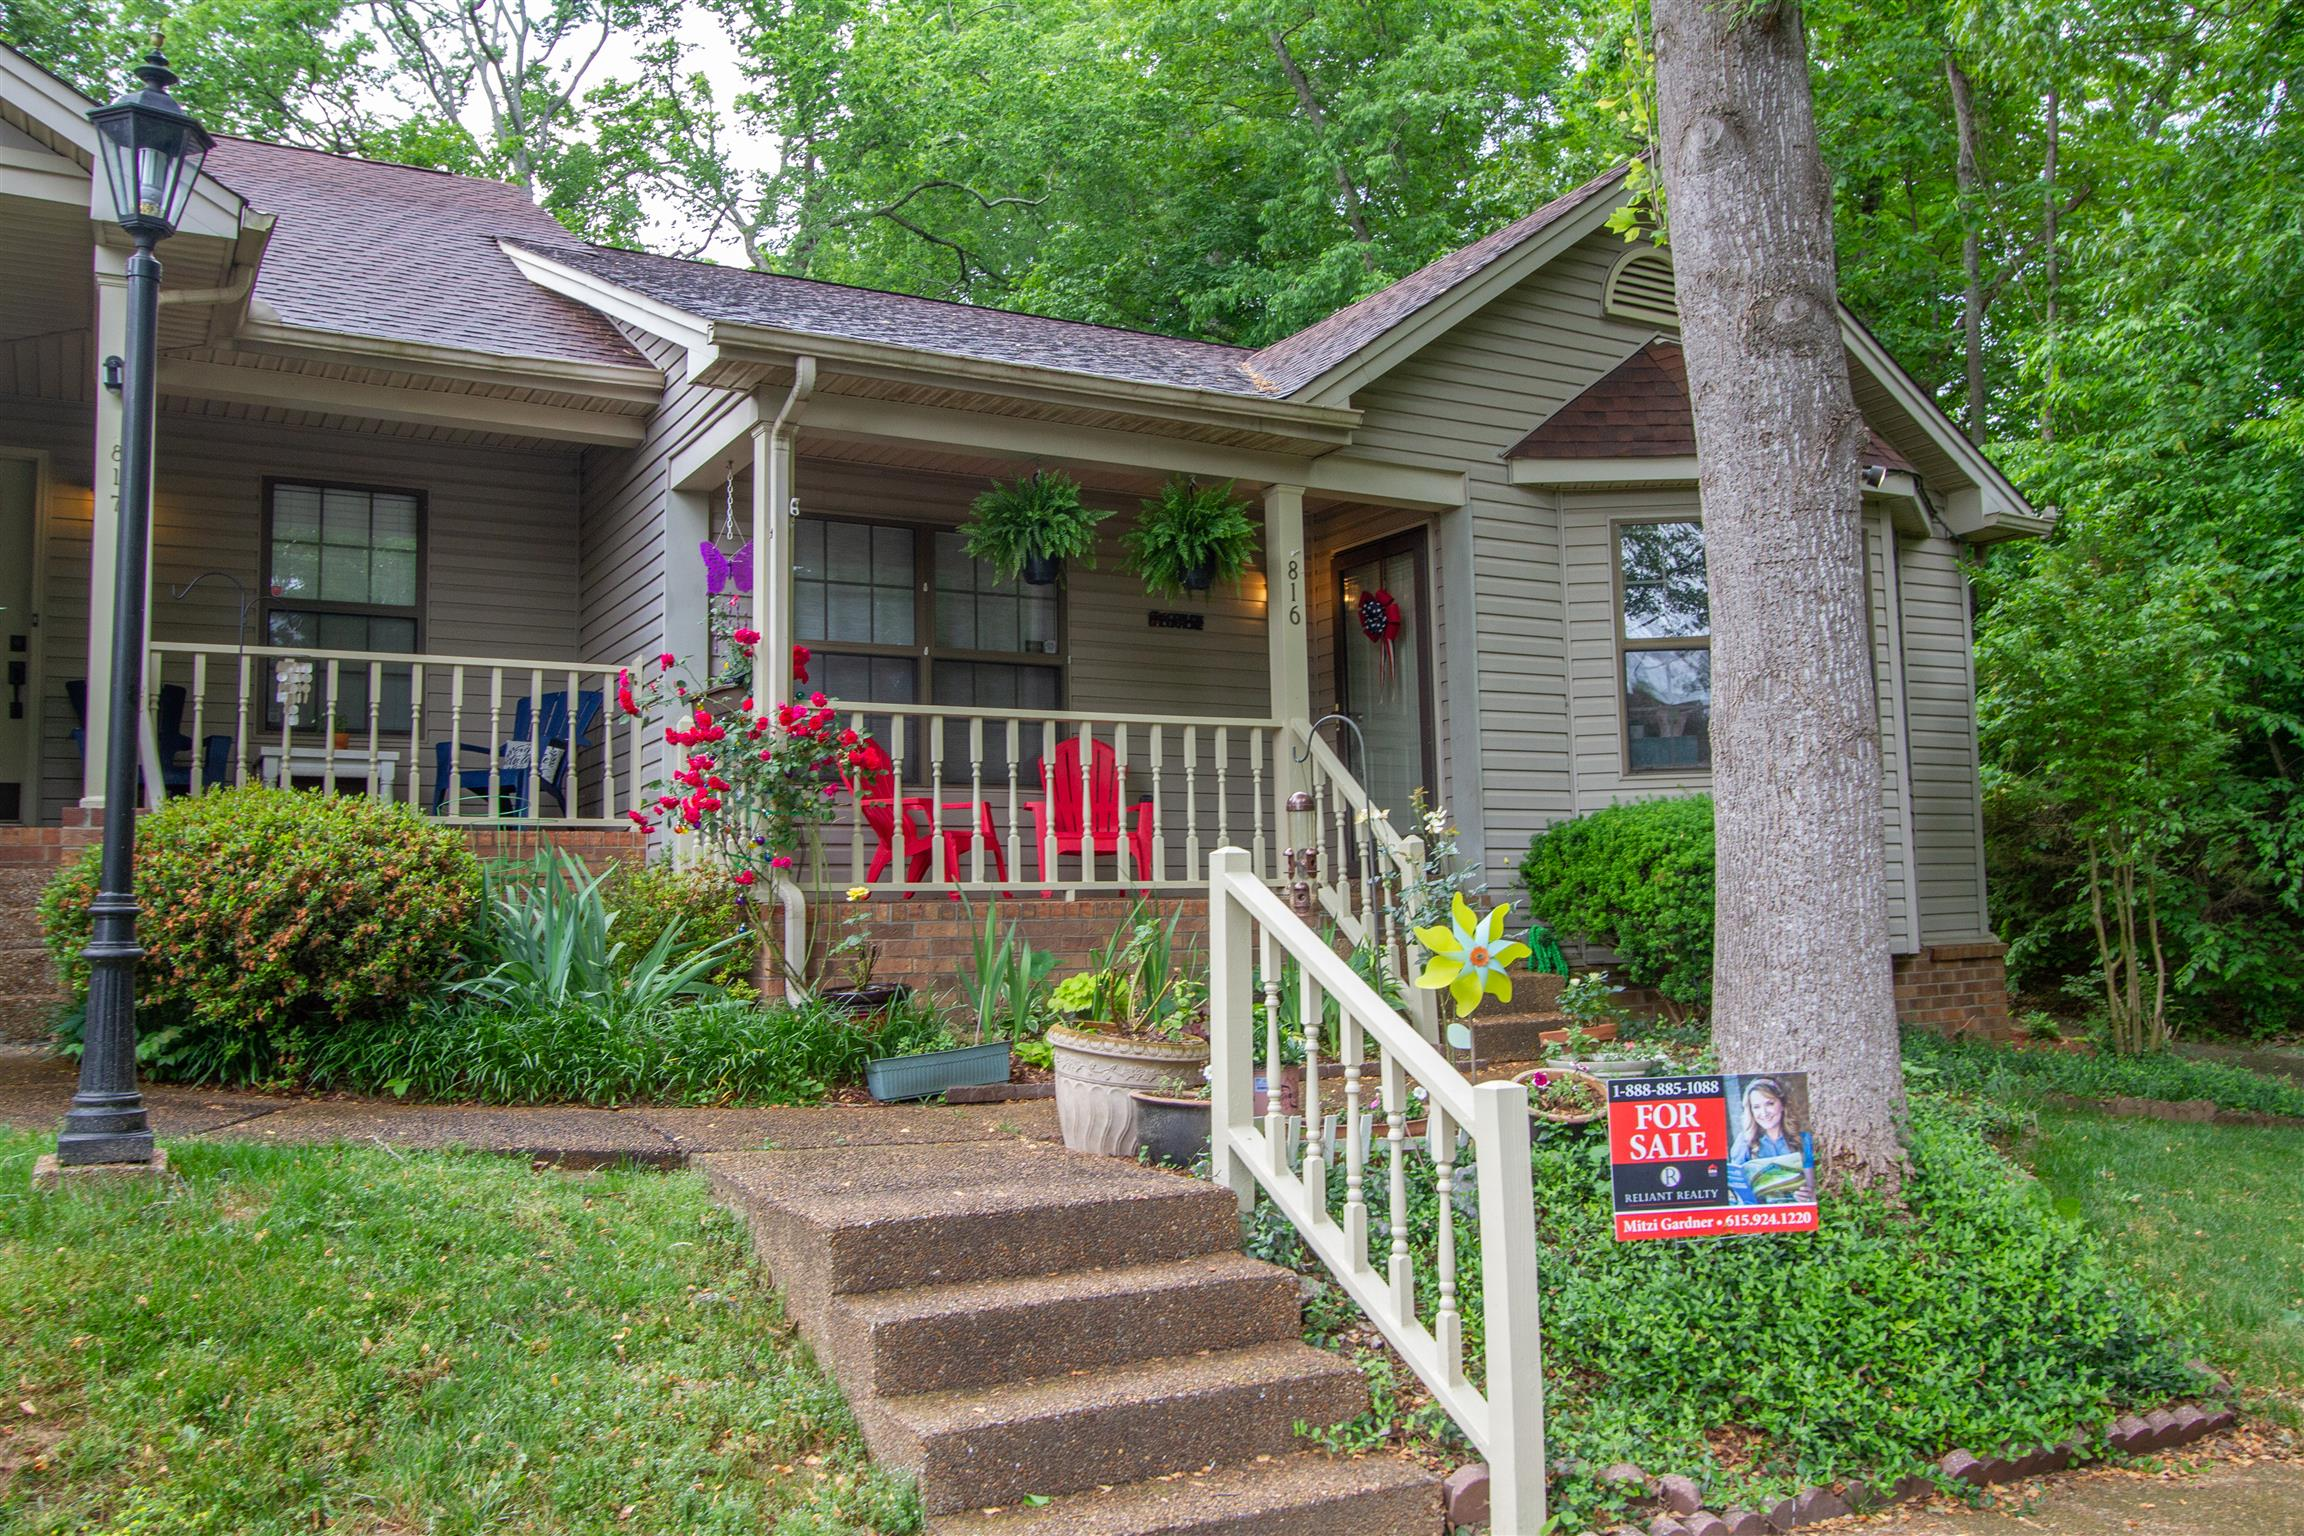 816 Beazer Ln, Nashville-Antioch in Davidson County County, TN 37013 Home for Sale